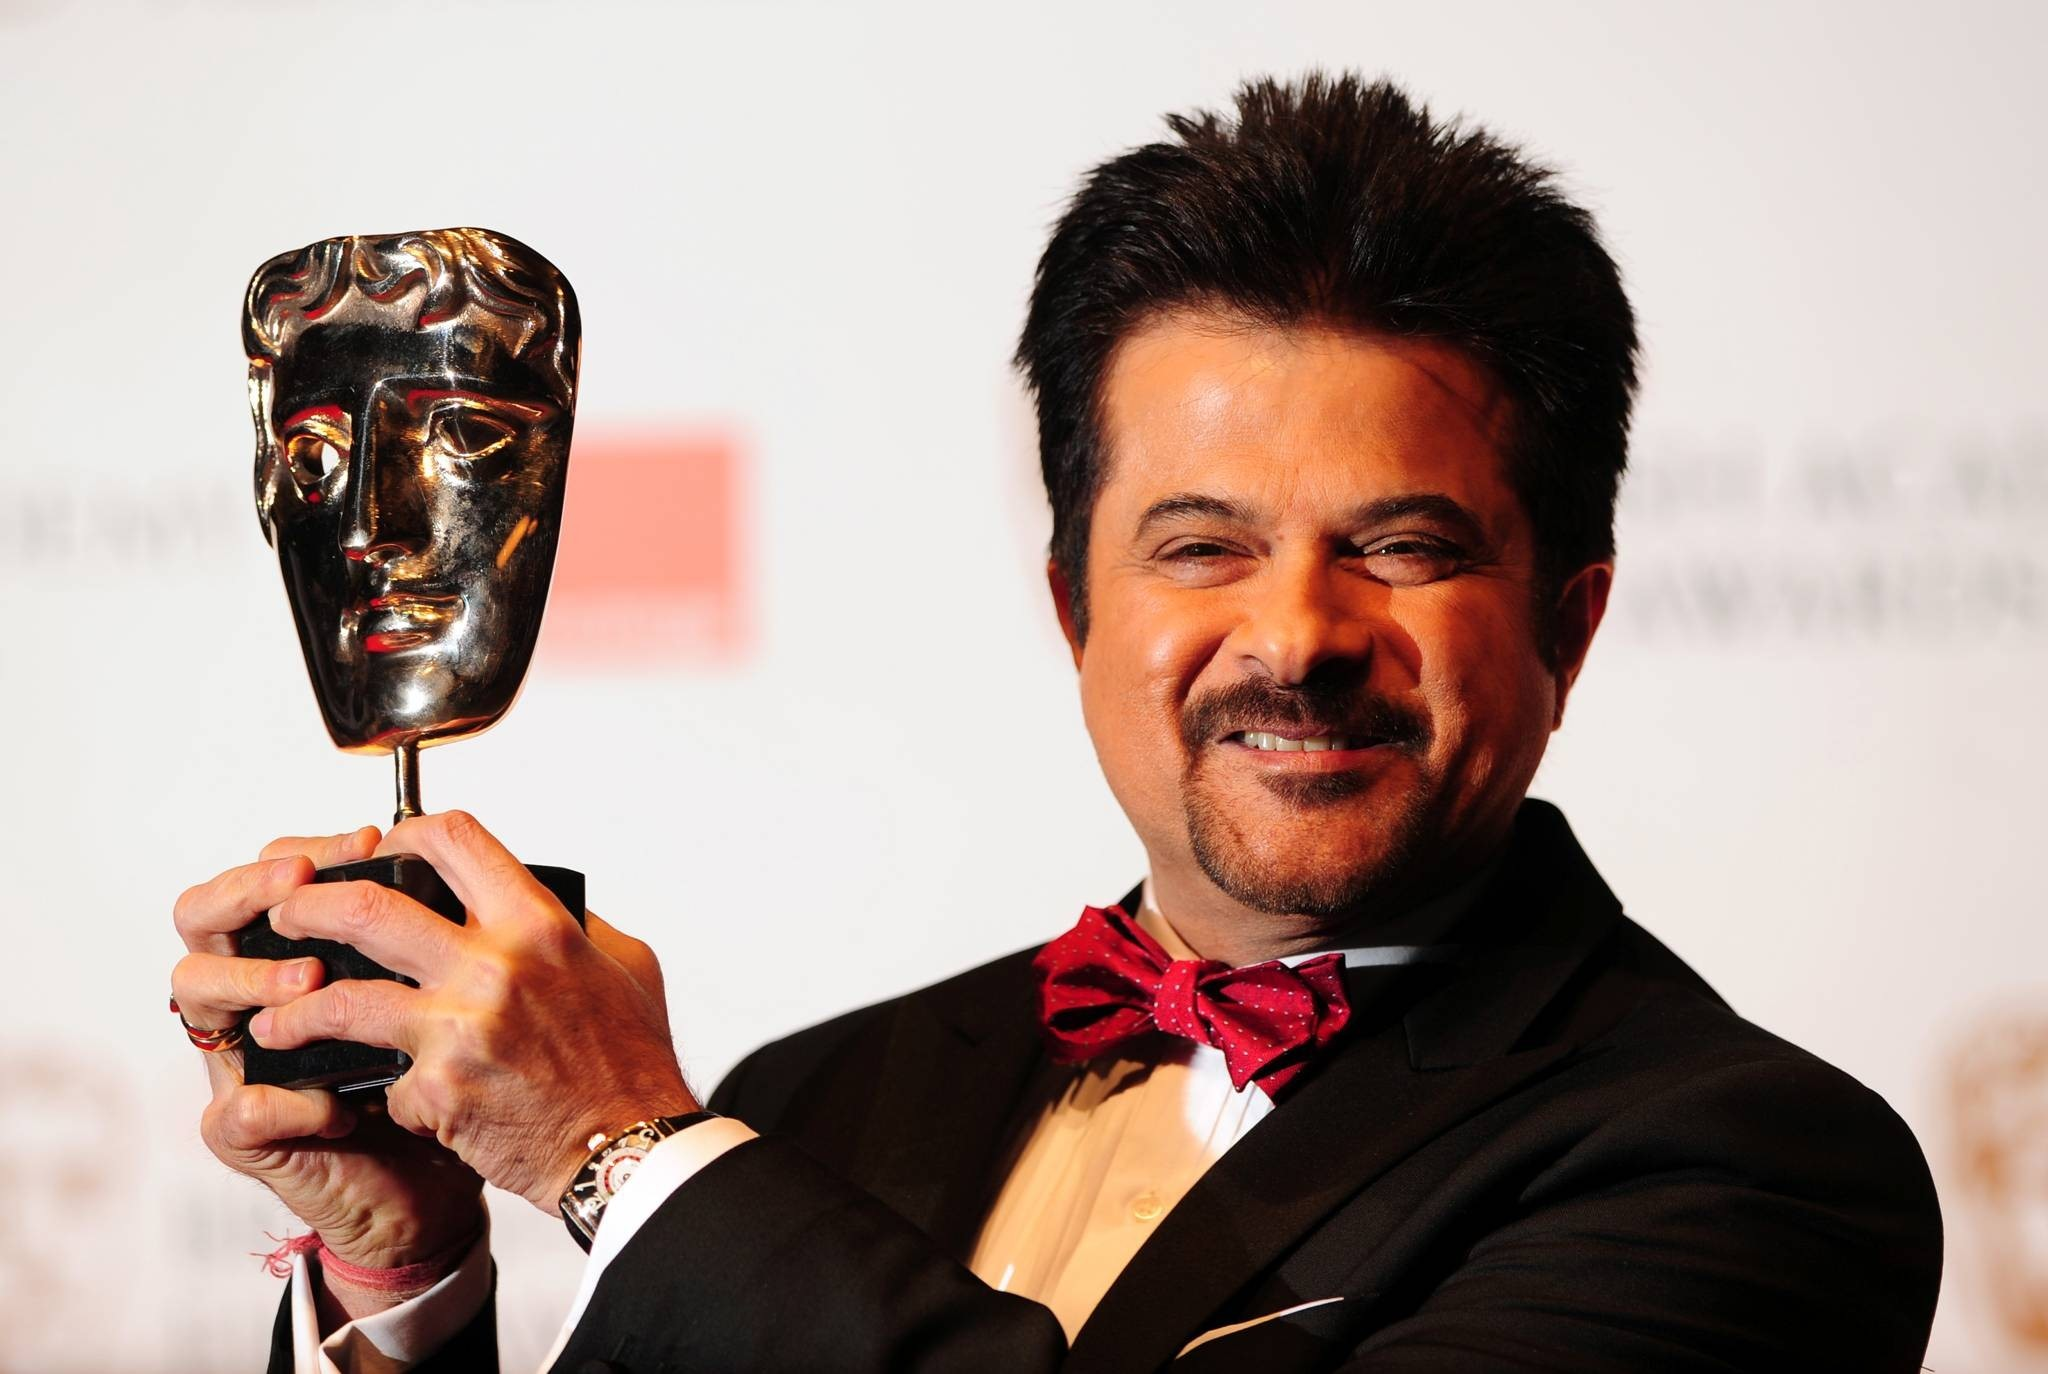 anil kapoor moviesanil kapoor filmi, anil kapoor family, anil kapoor wikipedia, anil kapoor daughter, anil kapoor family photos, anil kapoor wiki, anil kapoor movies, anil kapoor instagram, anil kapoor mp3, anil kapoor film, anil kapoor daughters name, anil kapoor kinopoisk, anil kapoor kareena kapoor, anil kapoor ailesi, anil kapoor twitter, anil kapoor butun filmleri, anil kapoor qnet, anil kapoor juhi chawla movies, anil kapoor karishma kapoor movie, anil kapoor биография